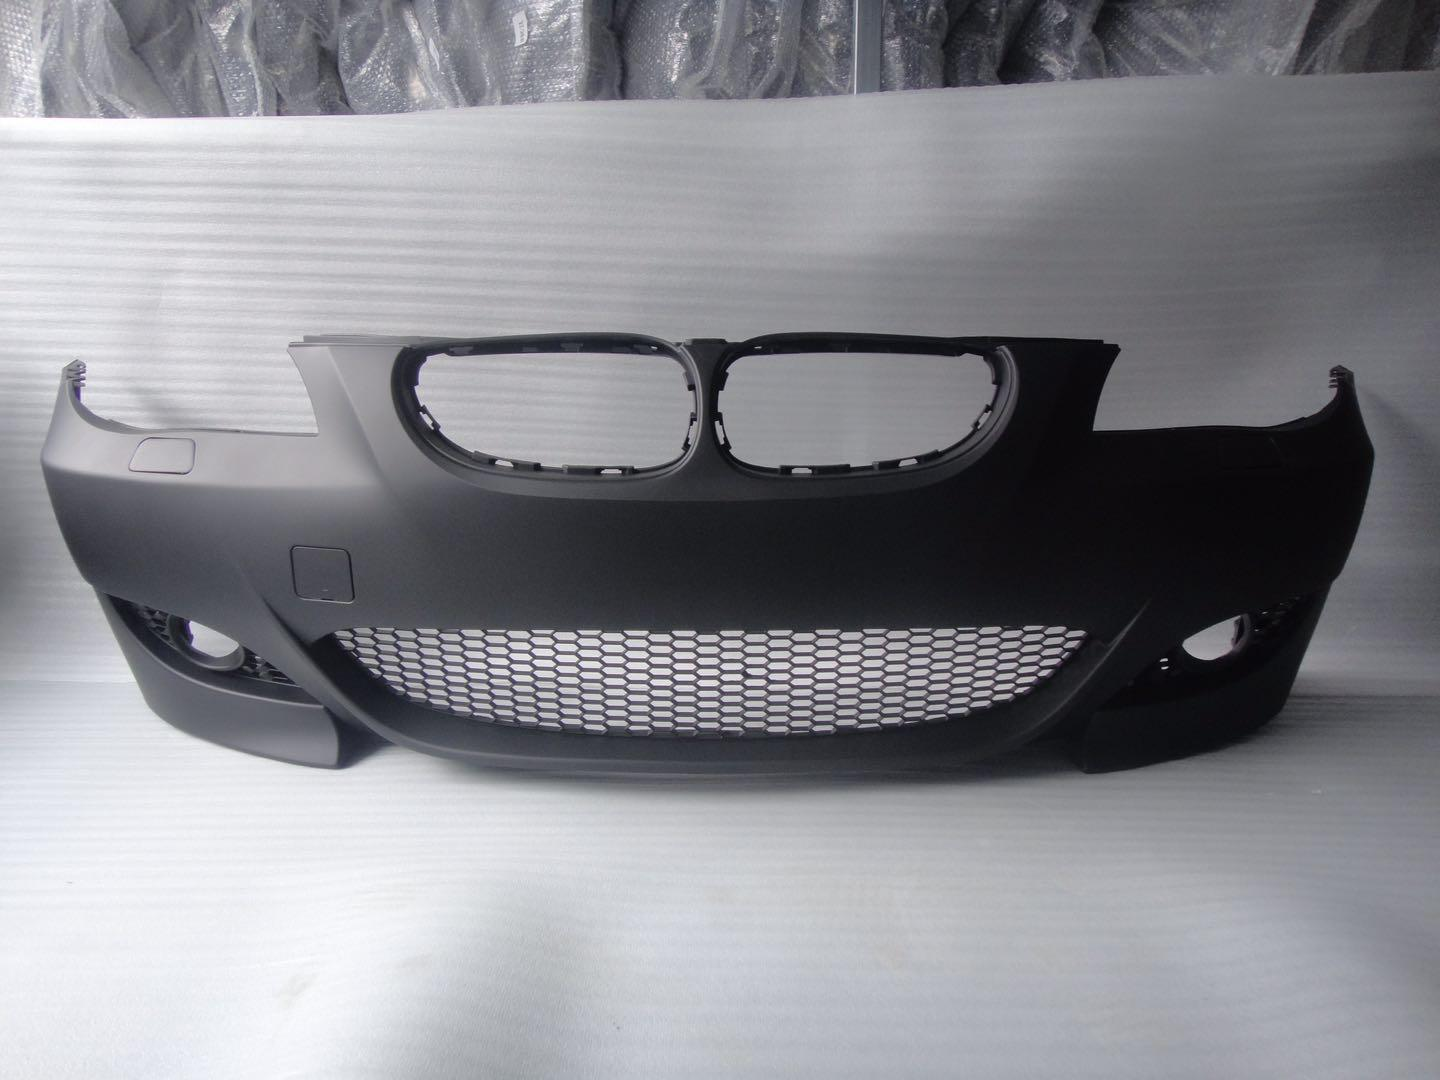 BMW E60 M5 body kit,BMW 520i 525i 530i 545i M5 body kit 3